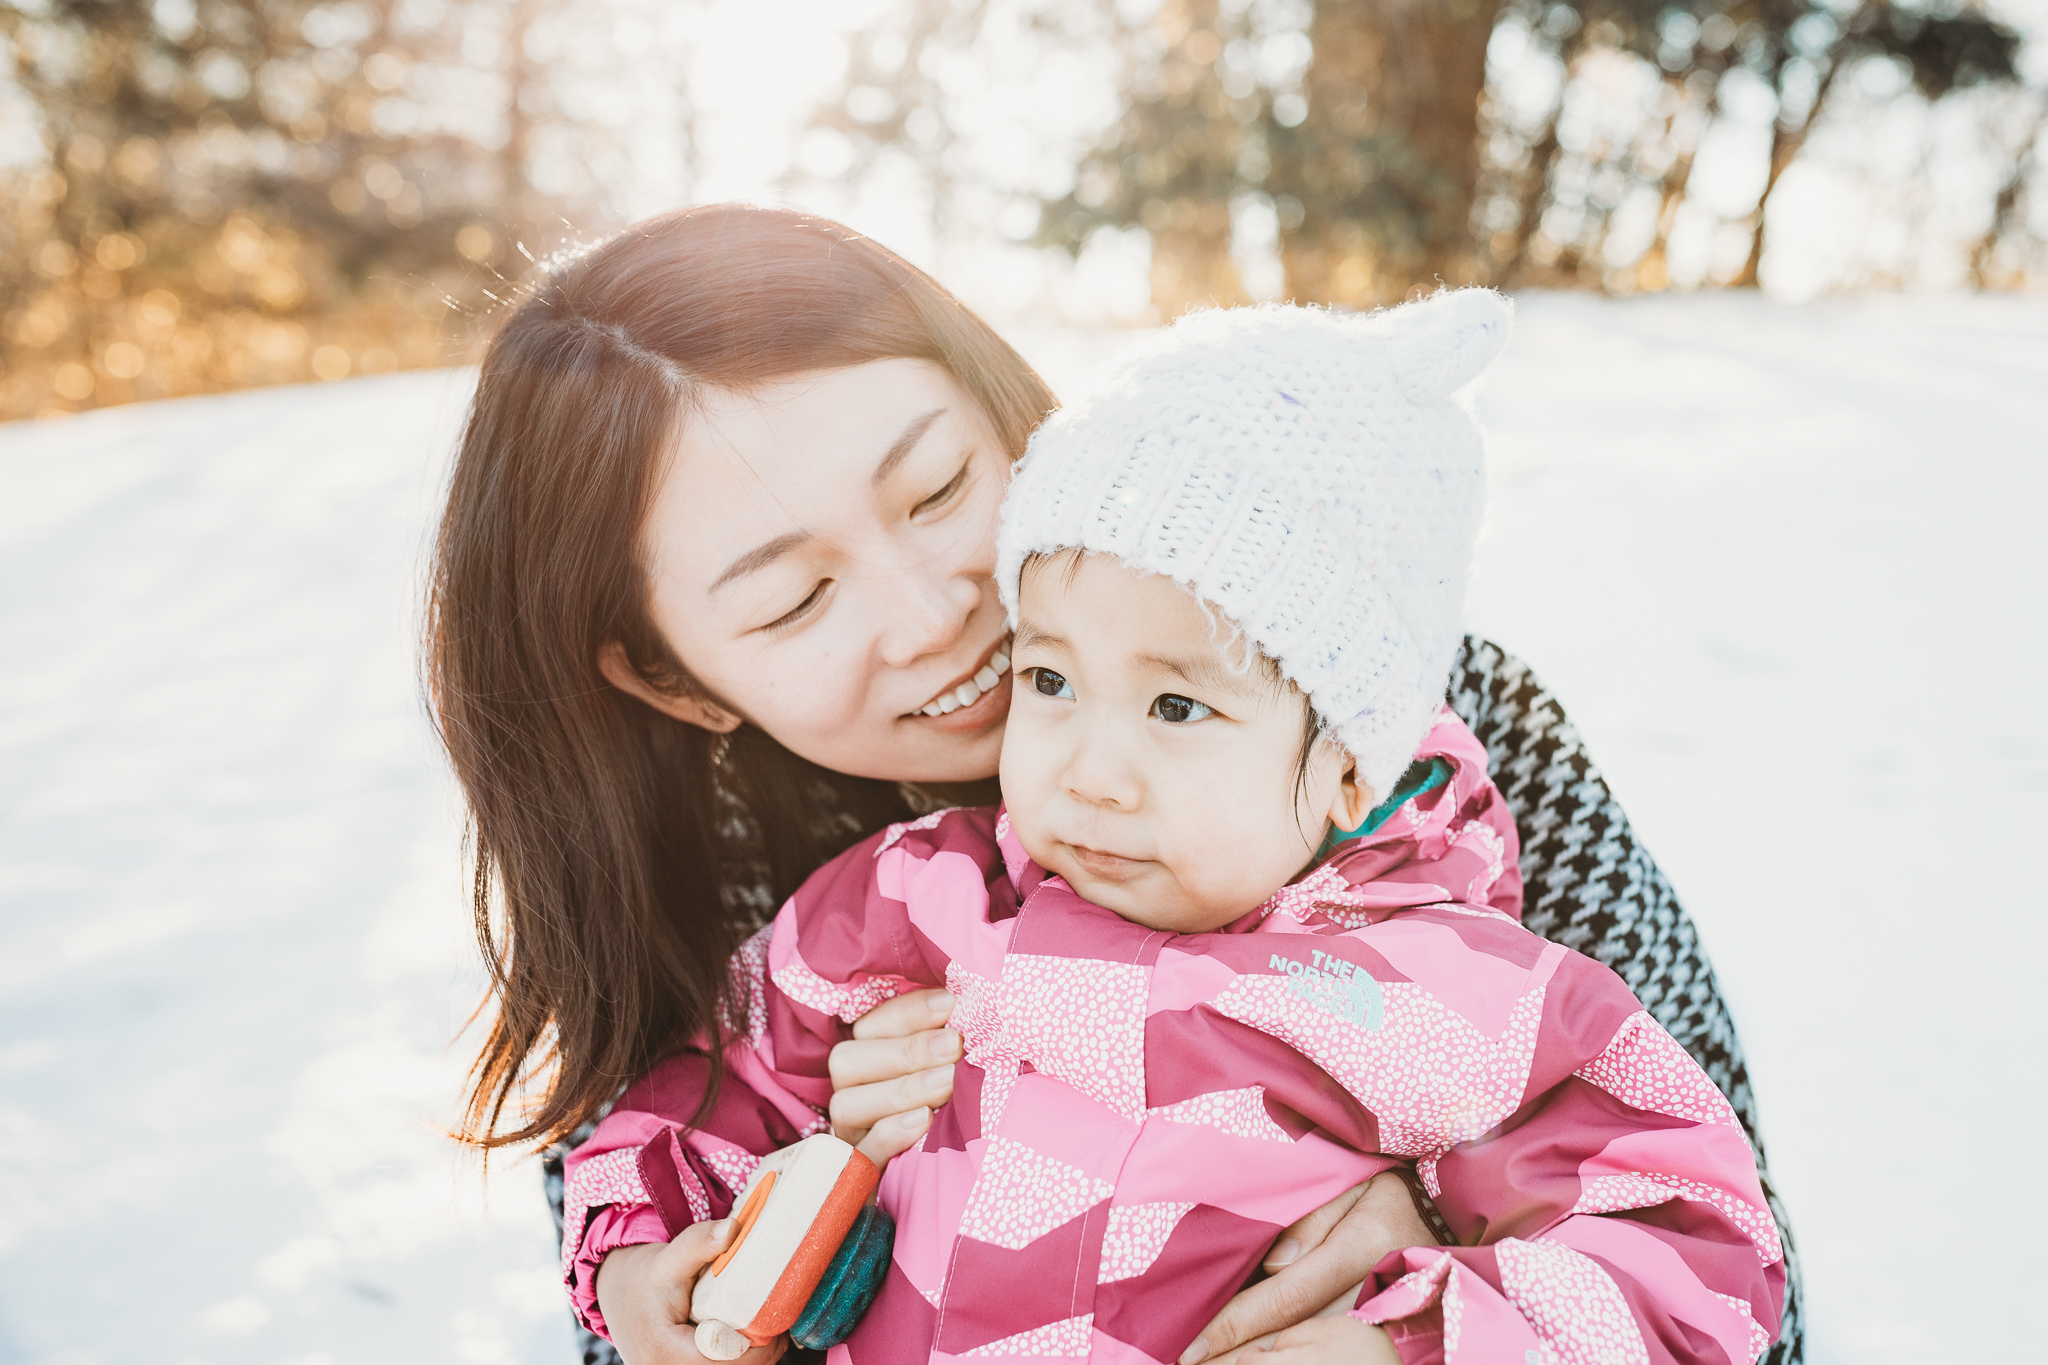 mom cuddling next to 2 year old daughter wearing pink in the snow - Minneapolis Family Photographer